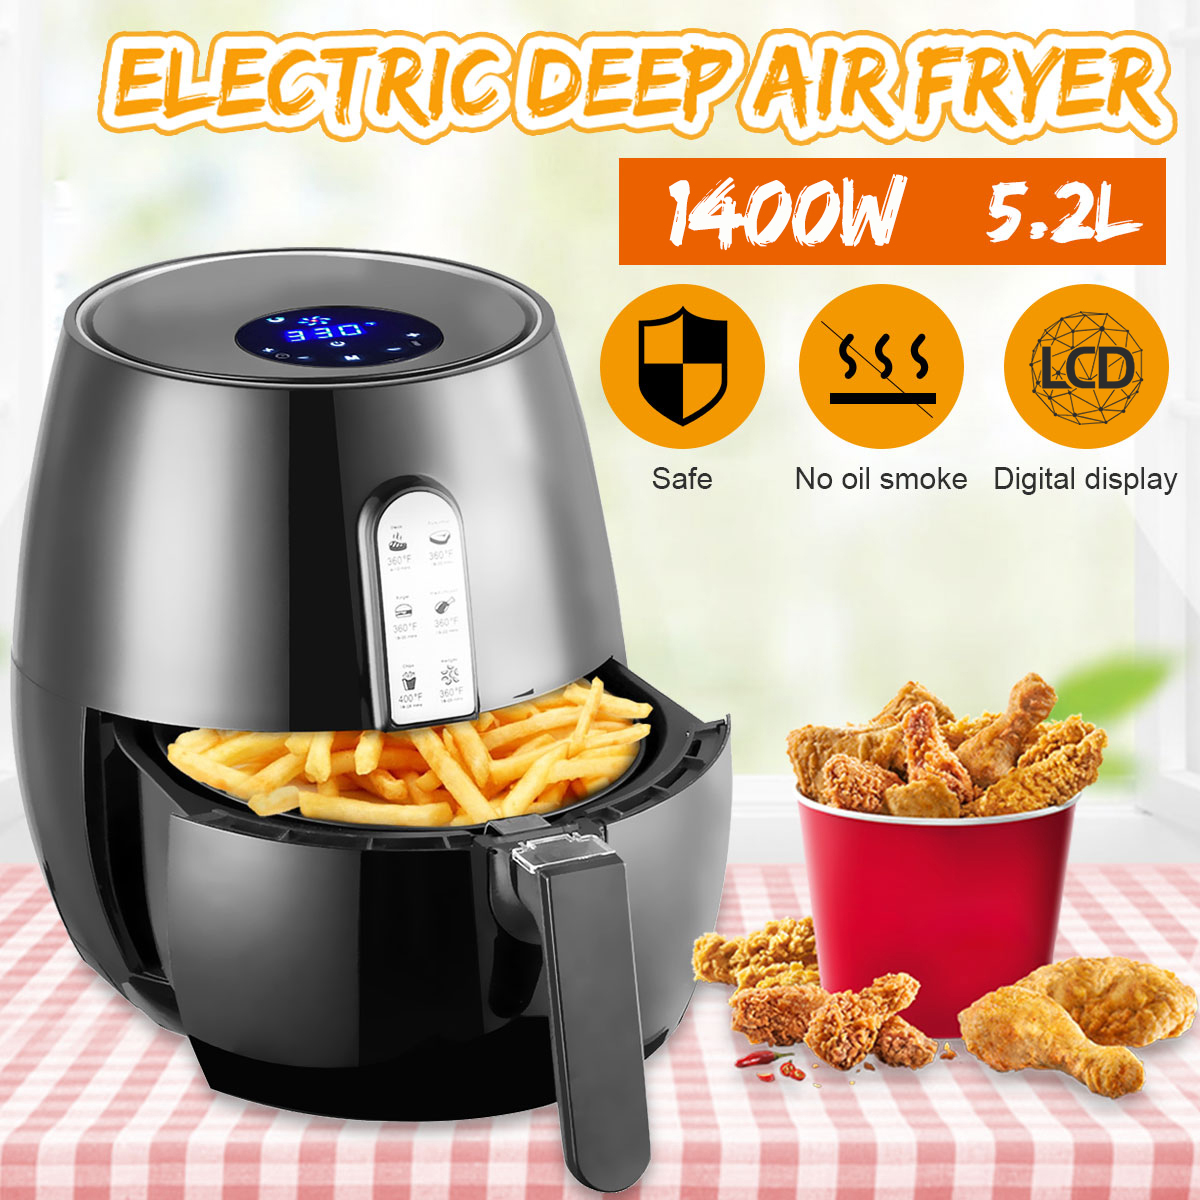 1400W 5.2L Health Fryer Cooker Smart Touch LCD Airfryer Pizza Oil free Air Fryer Multi function Smart Fryer for French fries 1